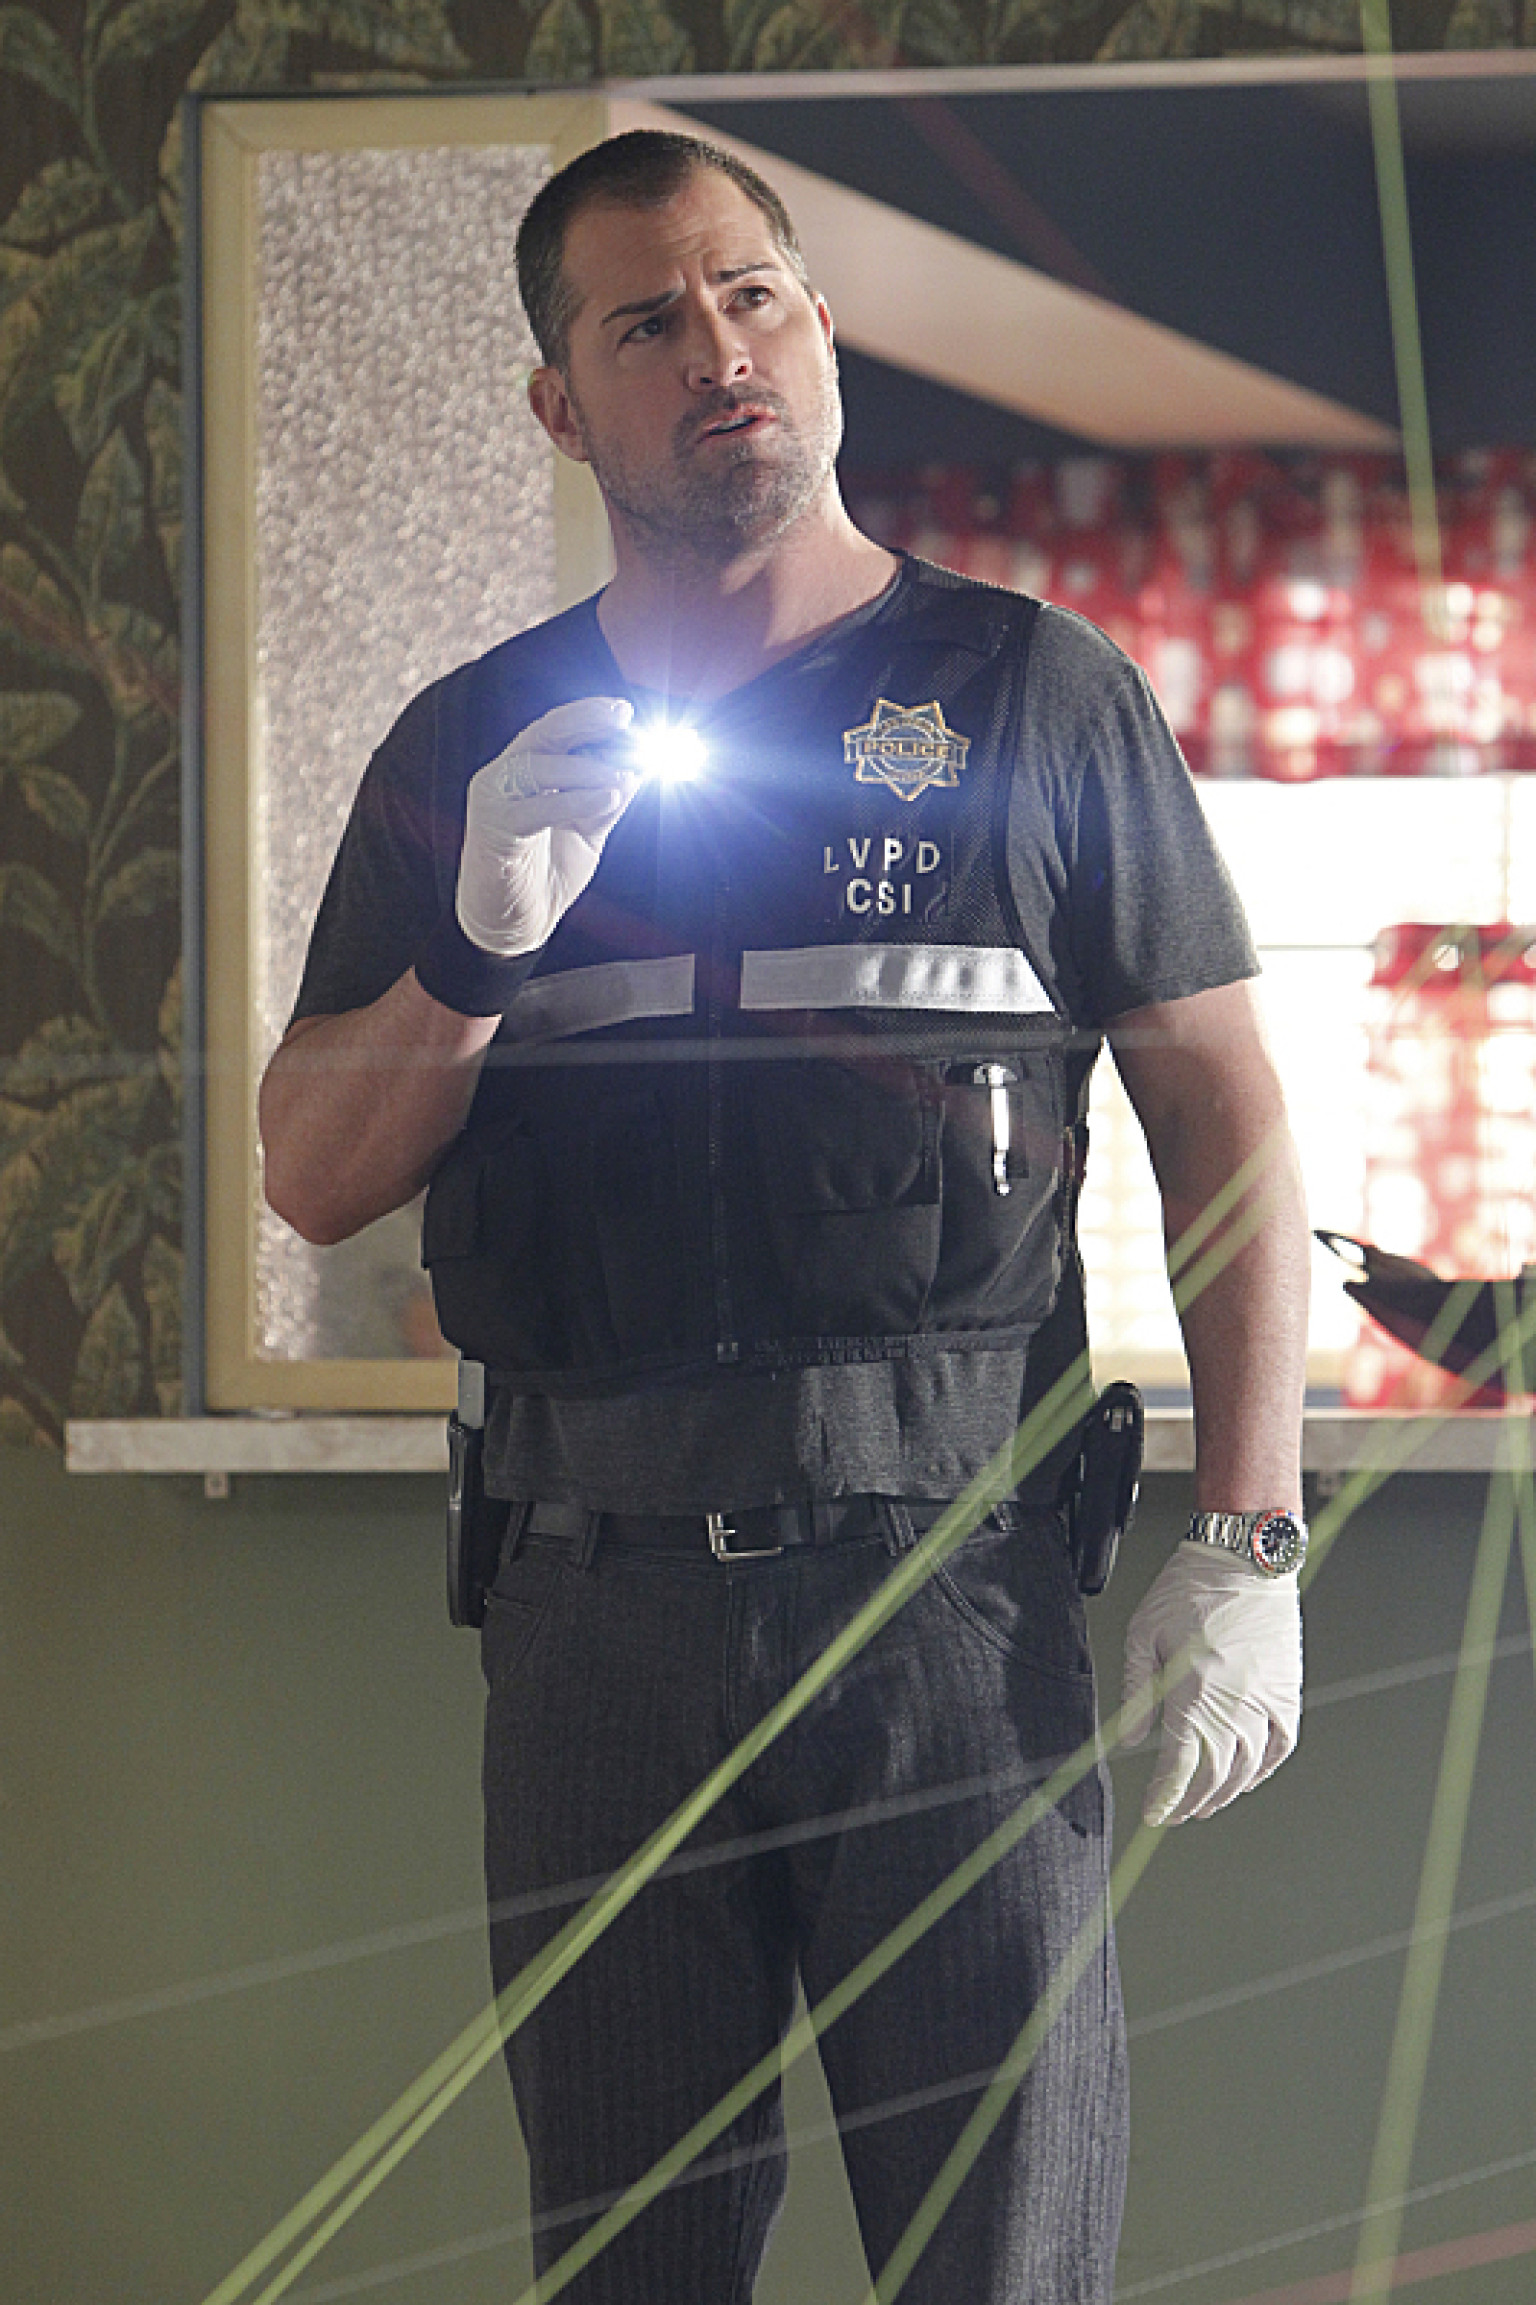 Csi Season 14 George Eads Taking Leave Of Absence After